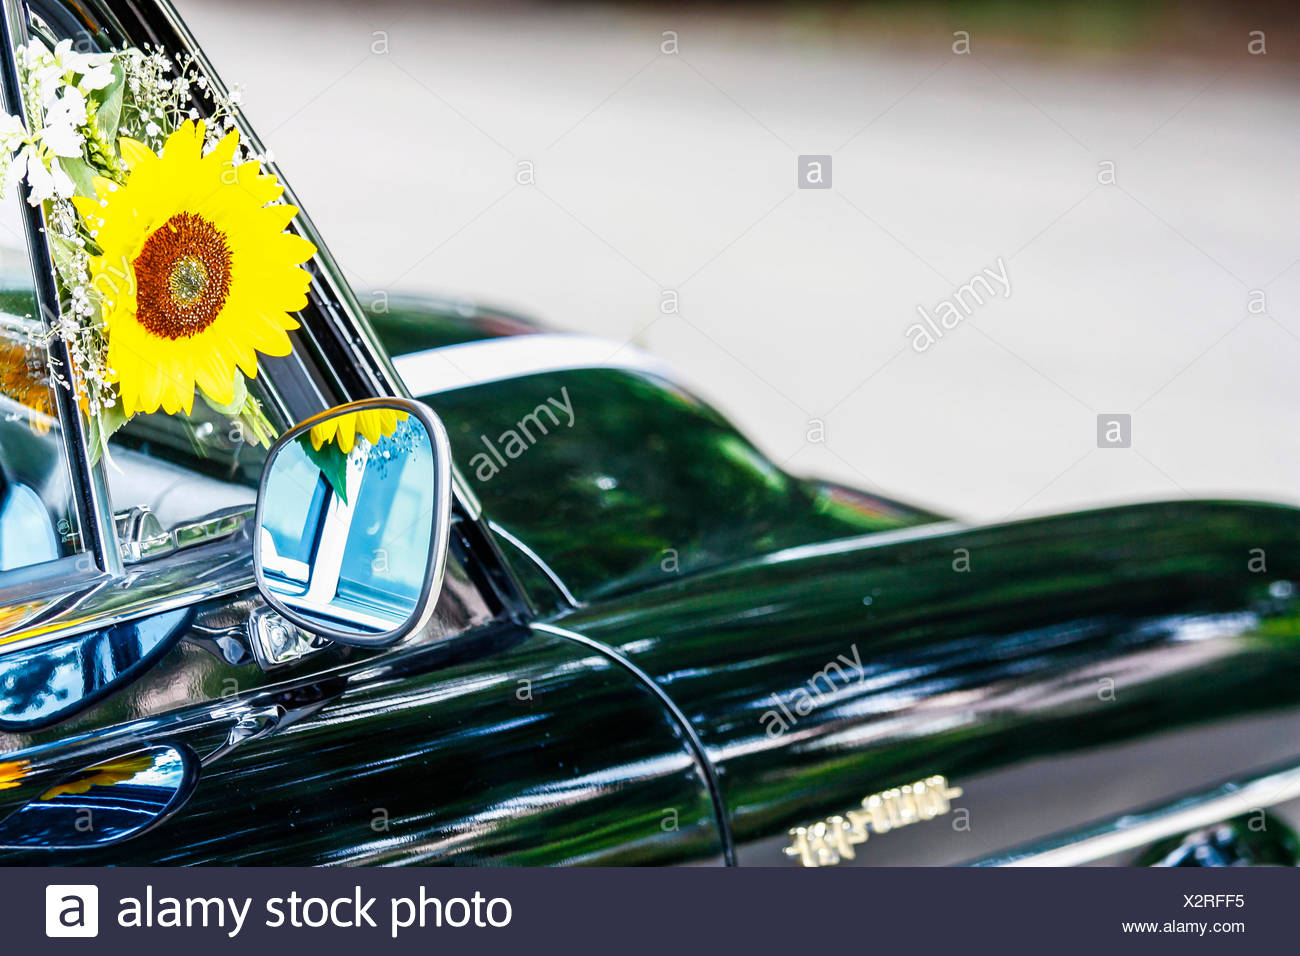 Car Mirrors Stock Photos Amp Car Mirrors Stock Images Alamy